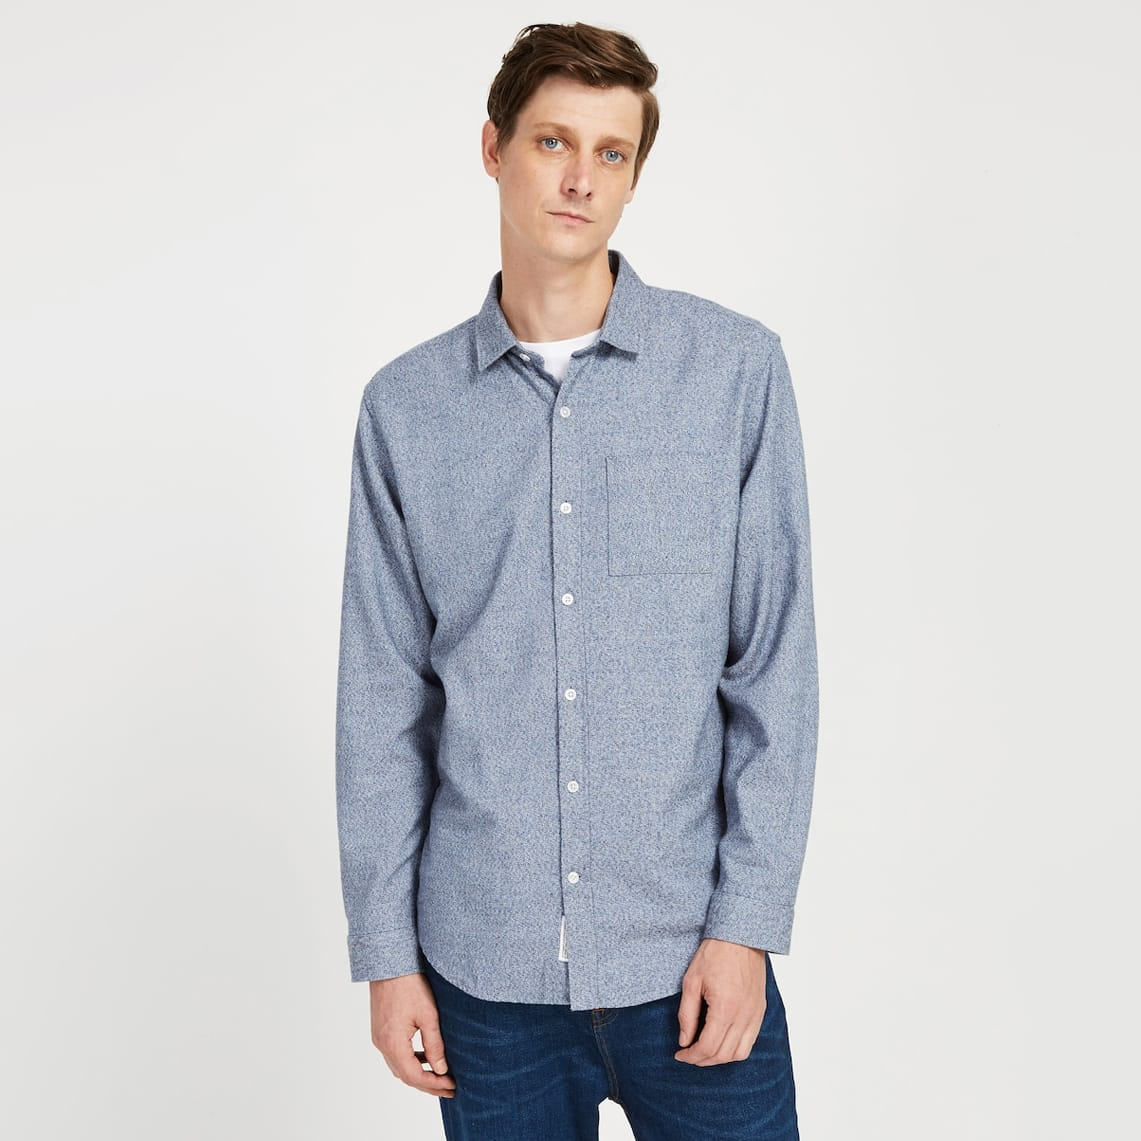 Frank & Oak - Marled Cotton Shirt in Navy